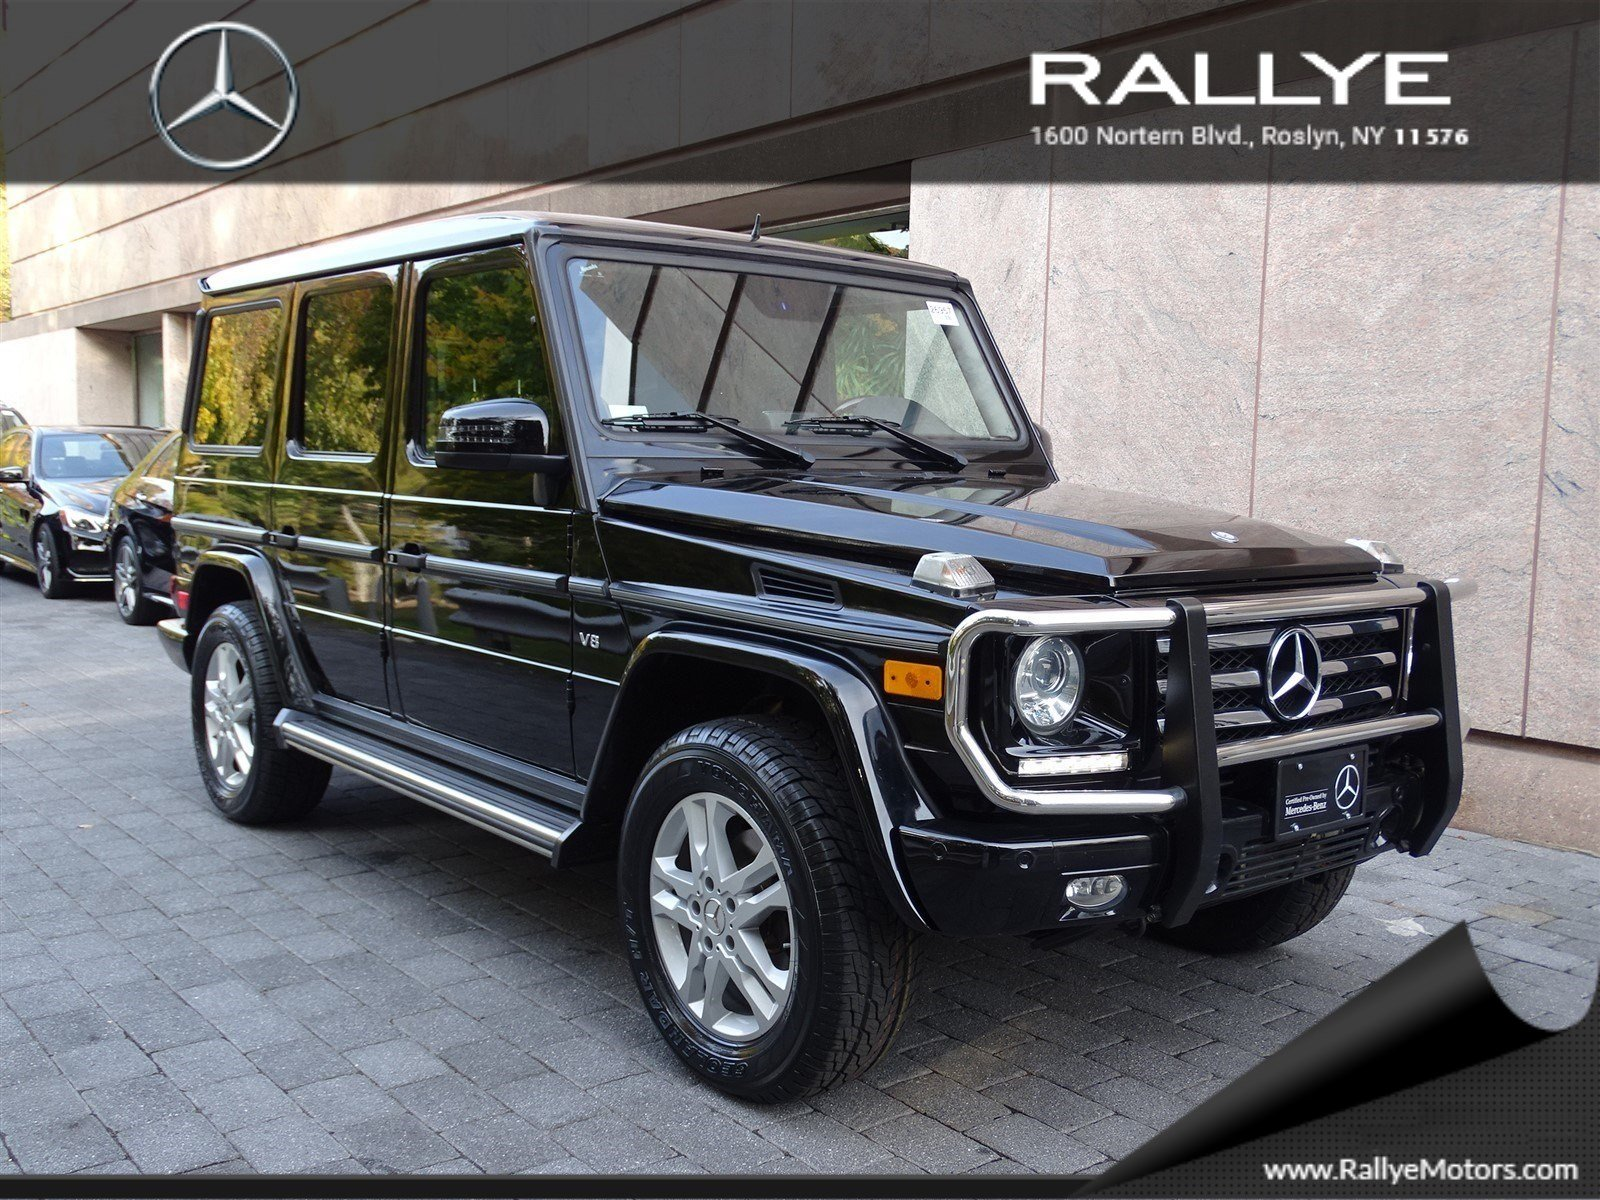 certified pre owned 2013 mercedes benz g class g550 suv in roslyn 26957 rallye motors. Black Bedroom Furniture Sets. Home Design Ideas